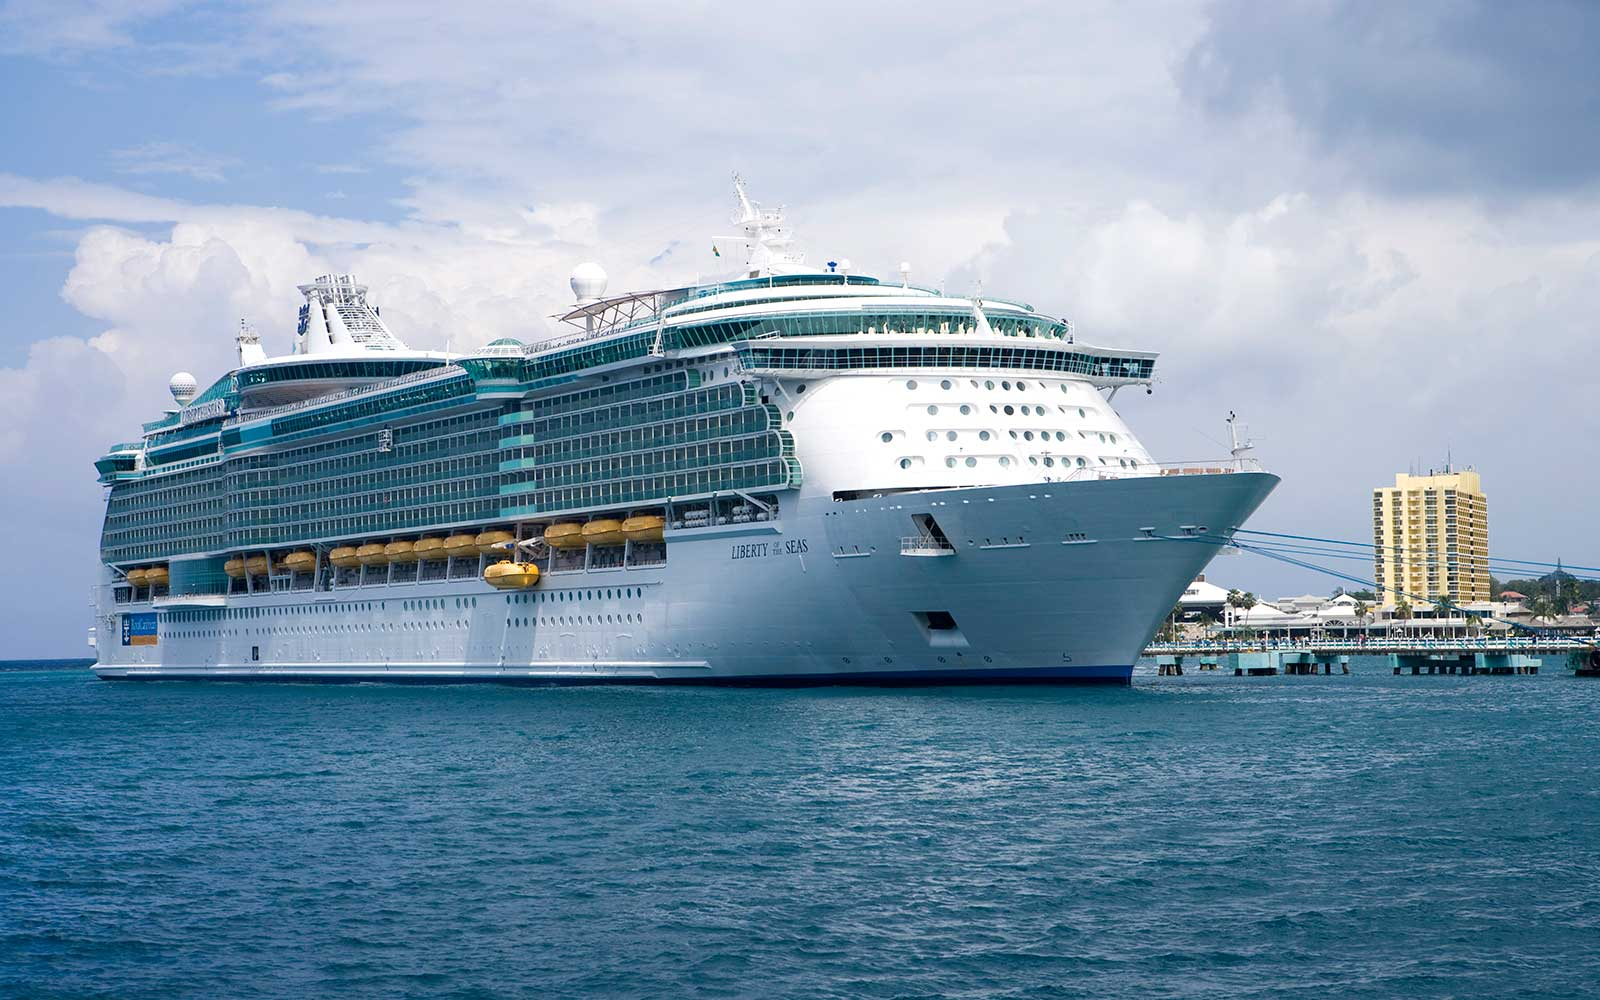 Royal Caribbean's New Ships Will Run on Liquefied Natural Gas